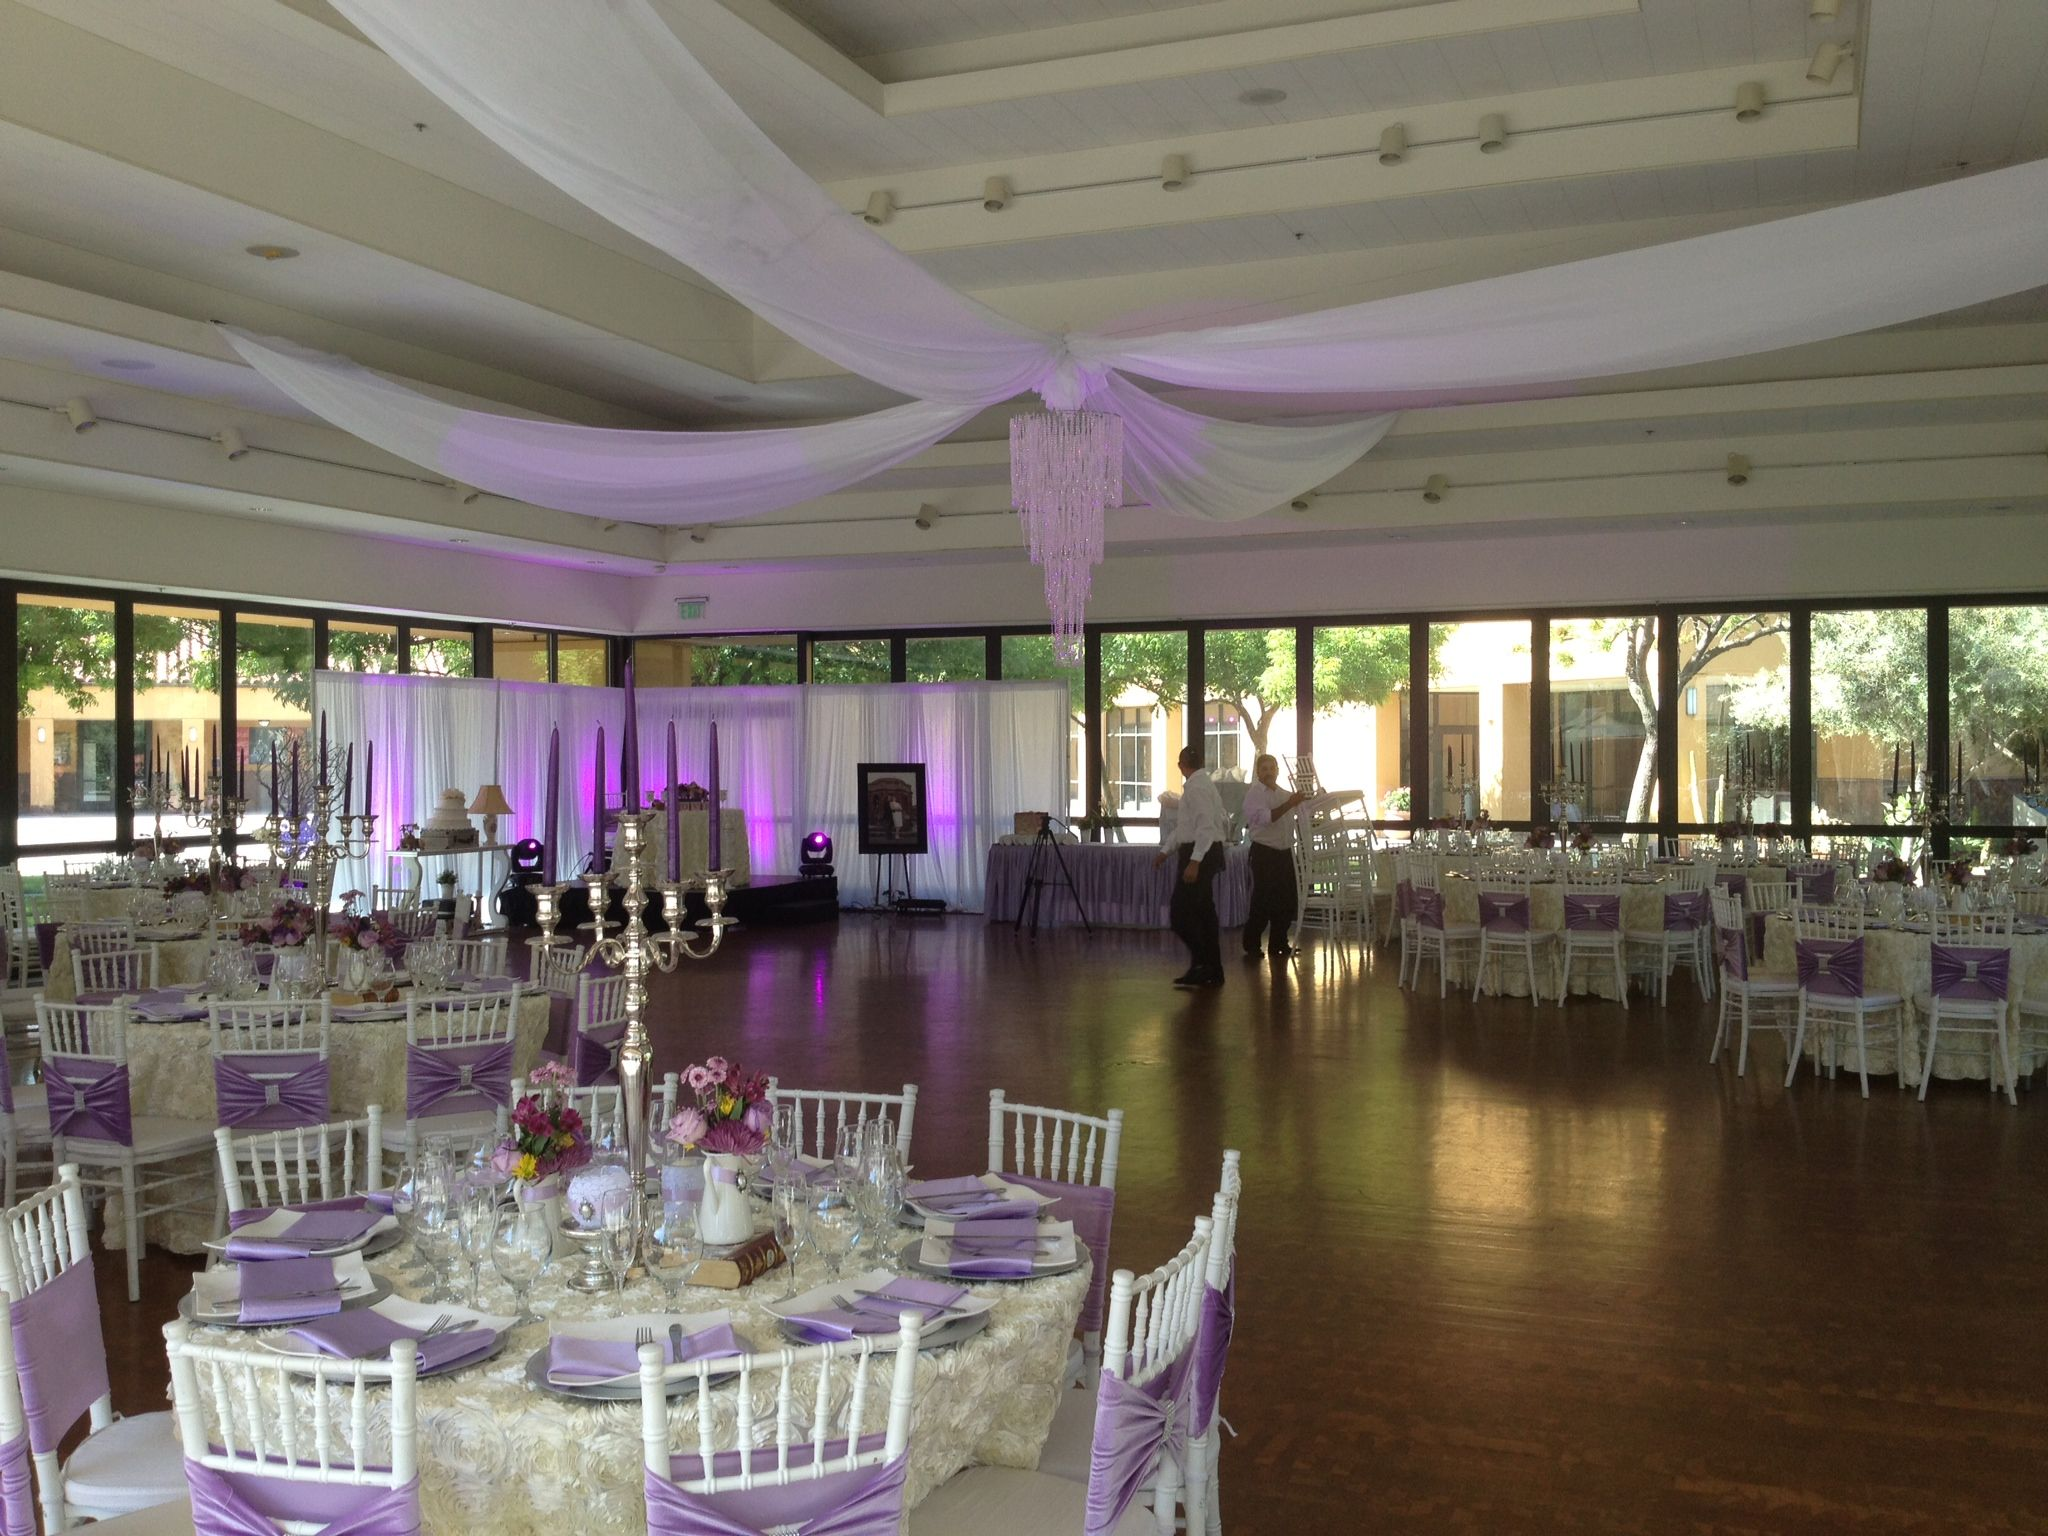 Wedding Reception At The Mexican Heritage Plaza Pavilion Setup Decoration By Dreams Of A Queen